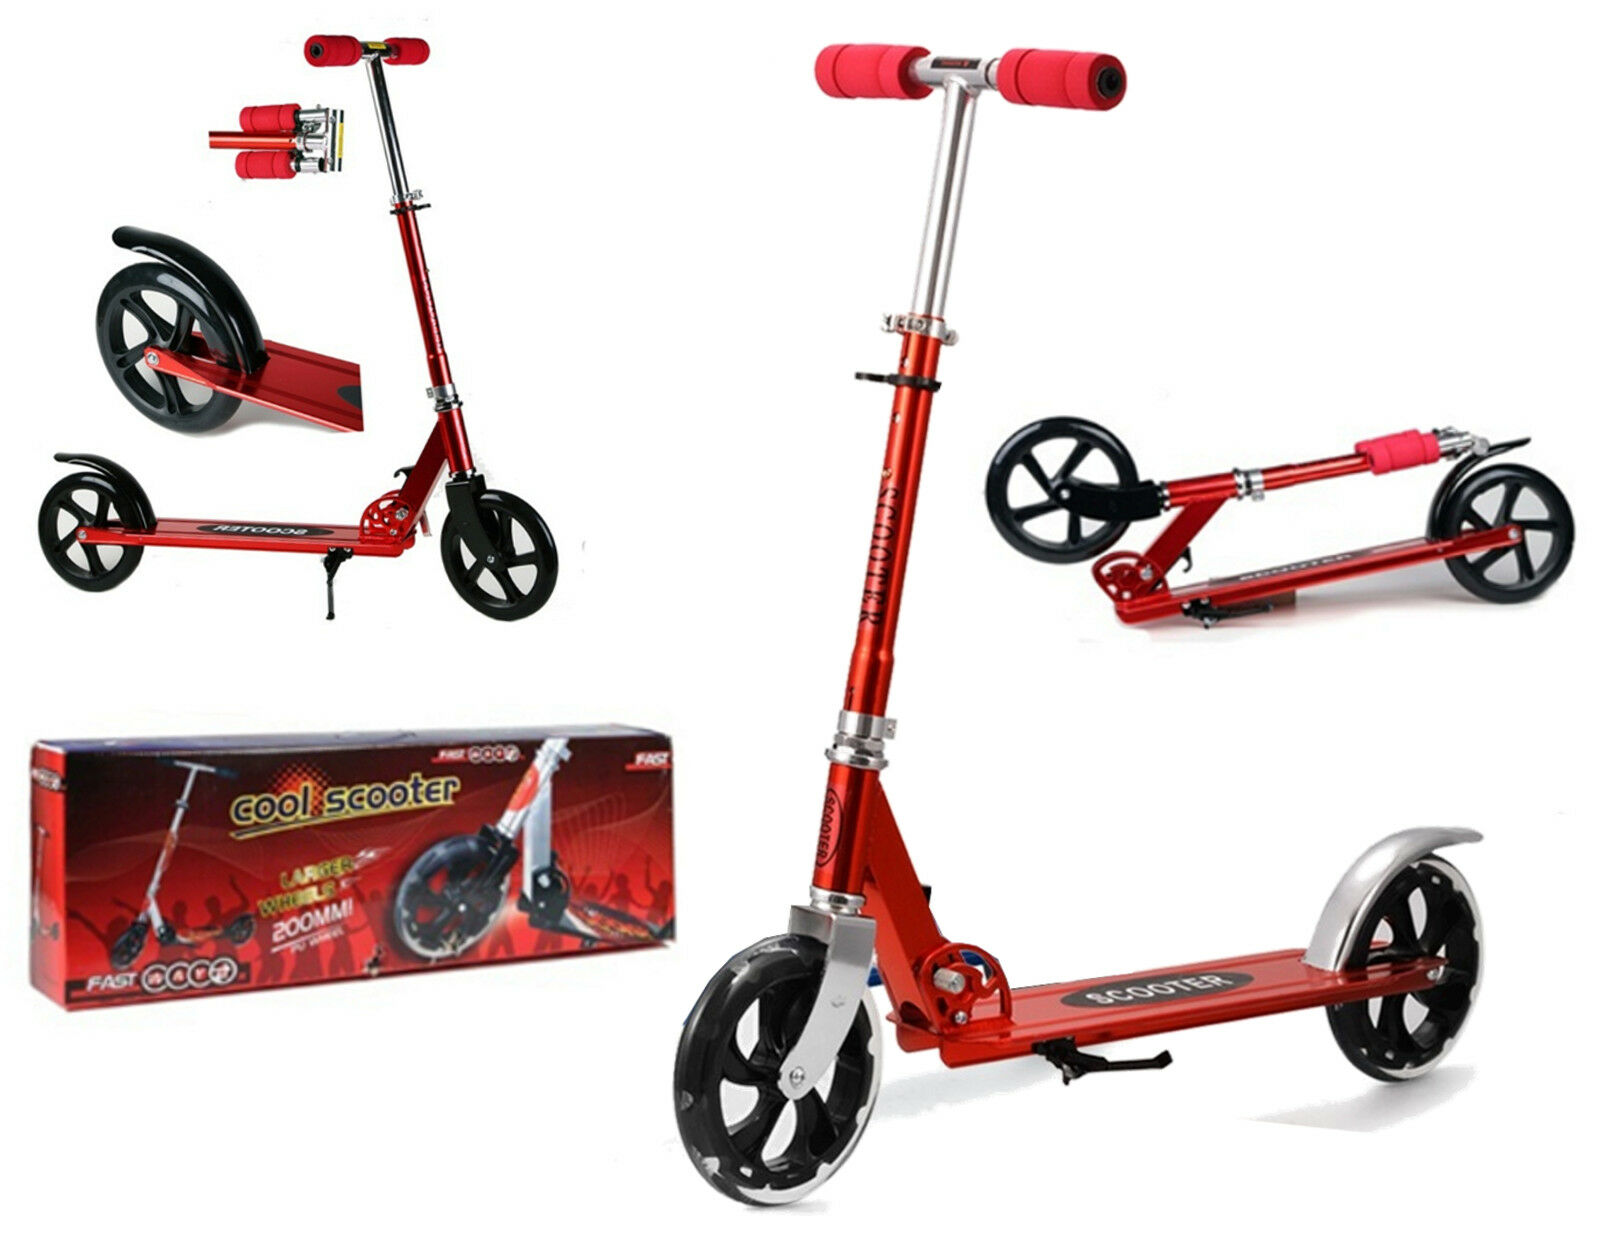 SCOOTER aluminum RED wheel 20 cm resealable height adjustable